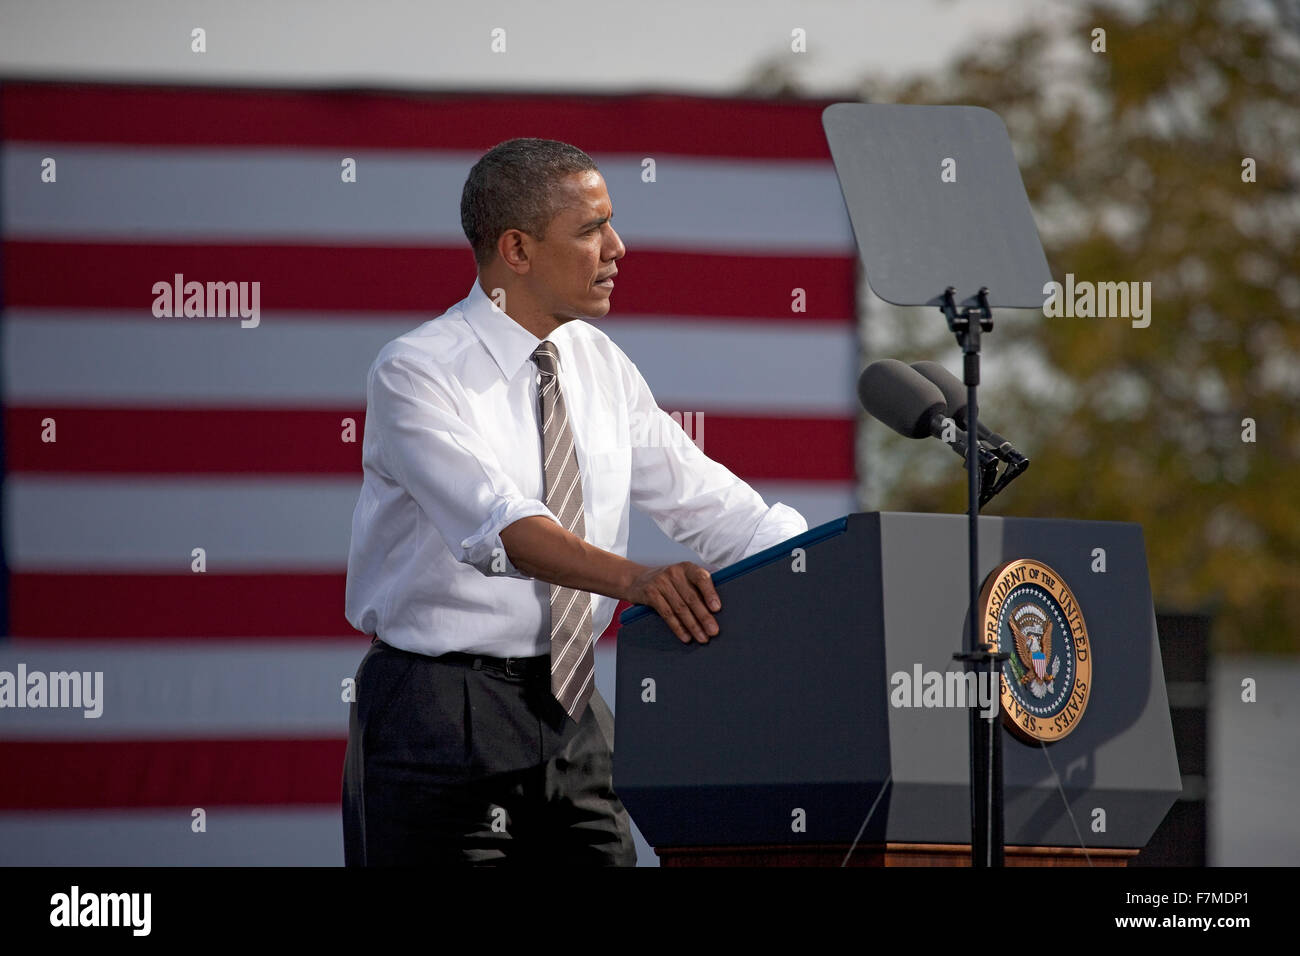 President Barack Obama appears at Presidential Campaign Rally, November 1, 2012, at Cheyenne Sports Complex, North - Stock Image